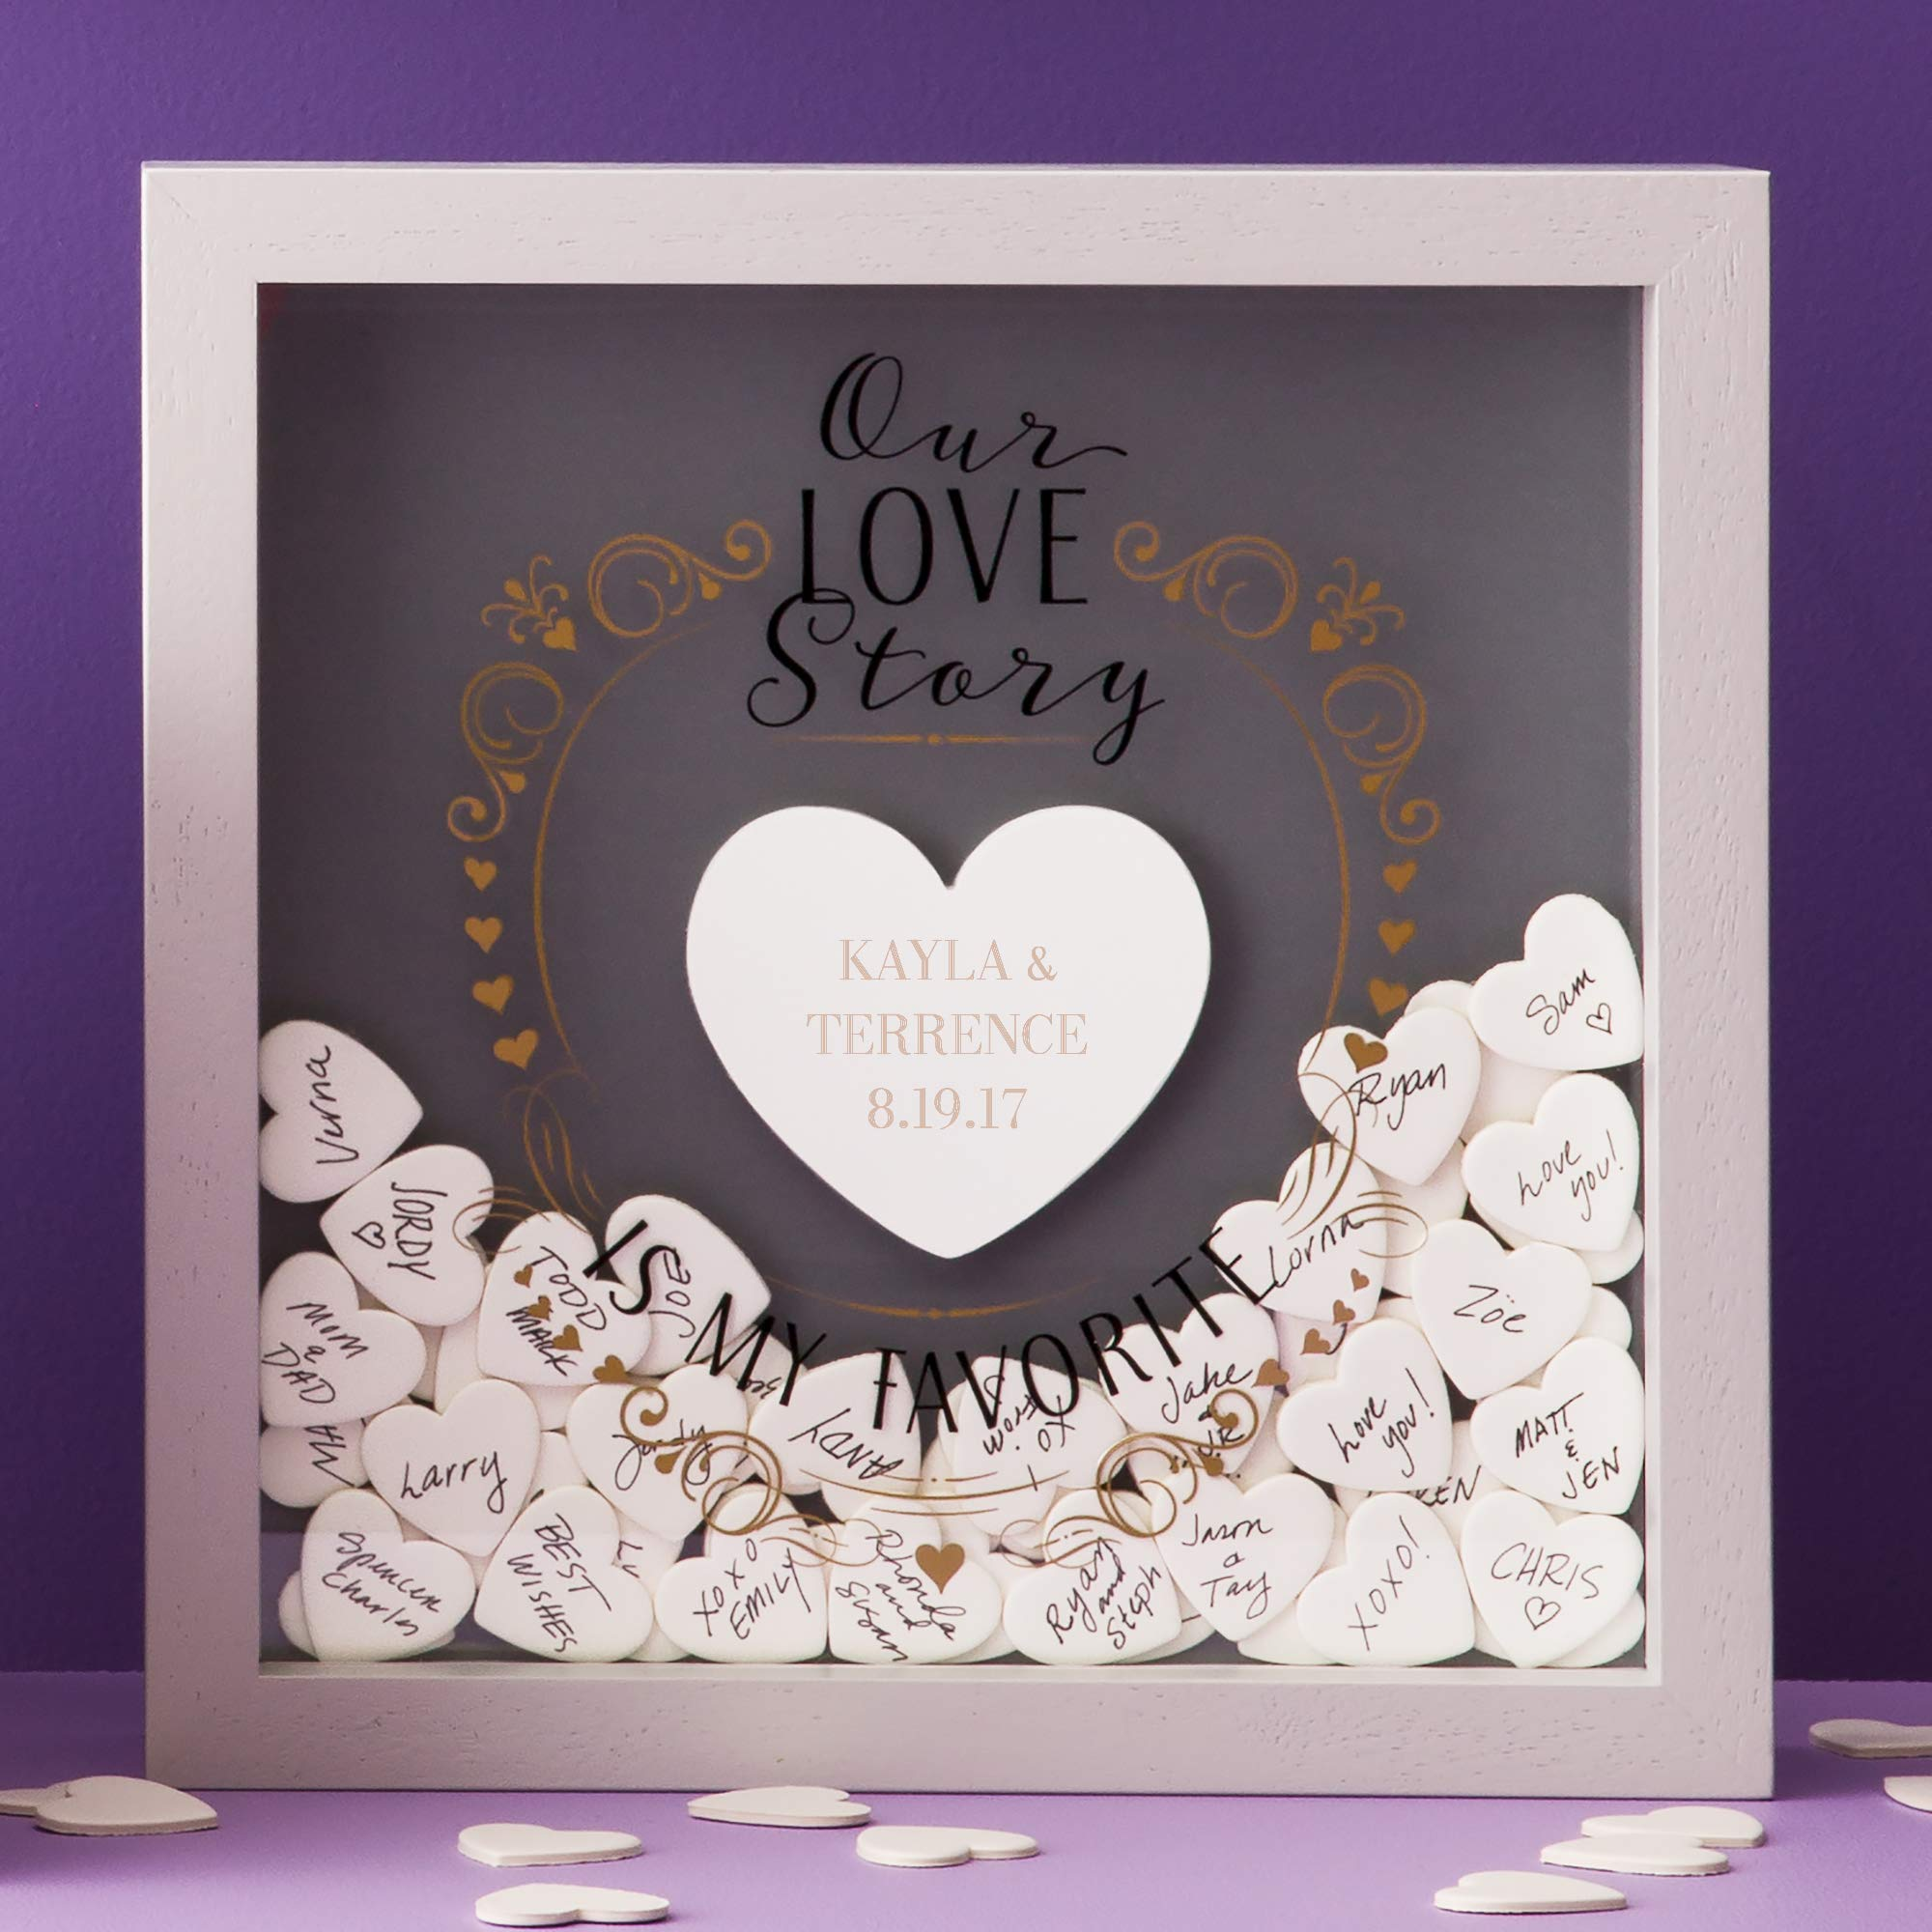 Things Remembered Personalized Love Story Wedding Message Box with Engraving Included by Things Remembered